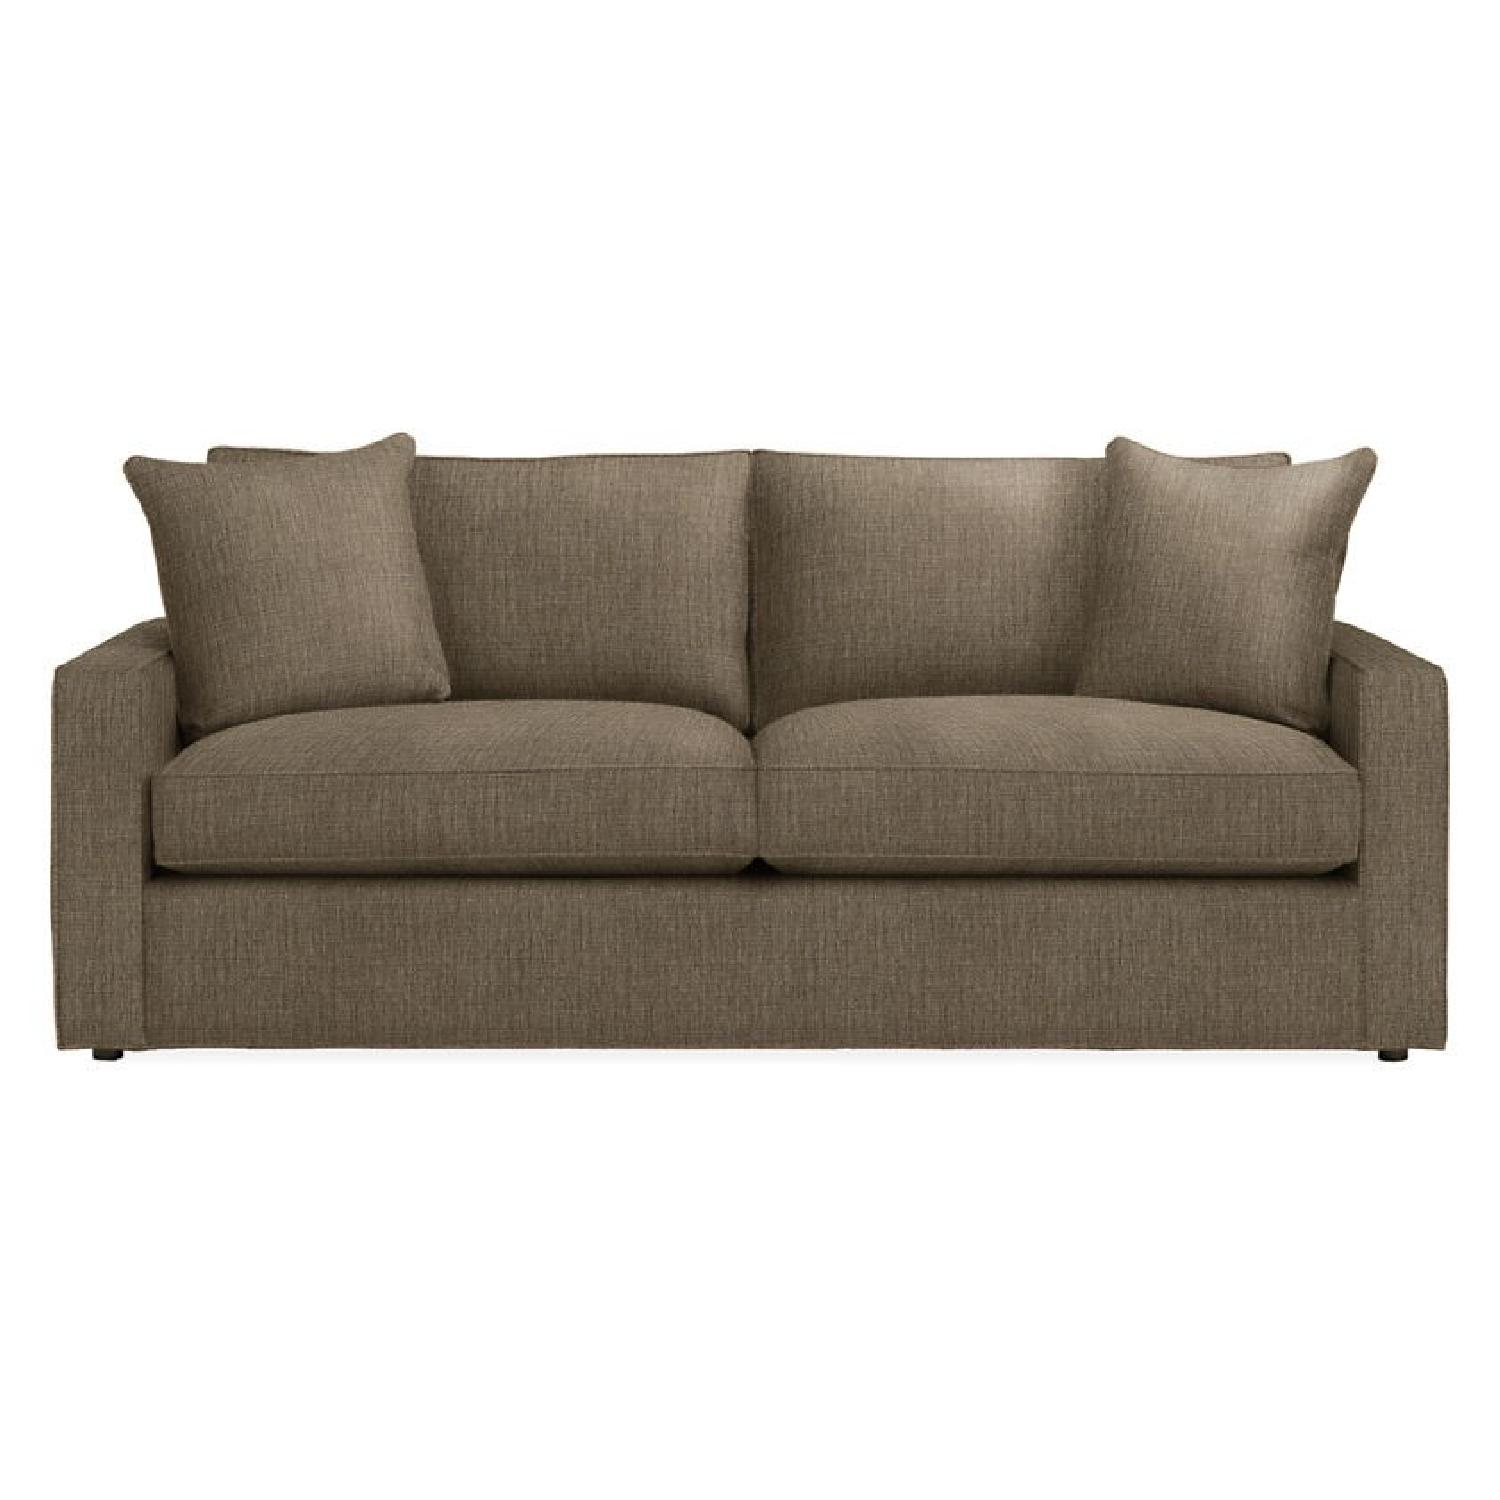 Room & Board York Sleeper Sofa